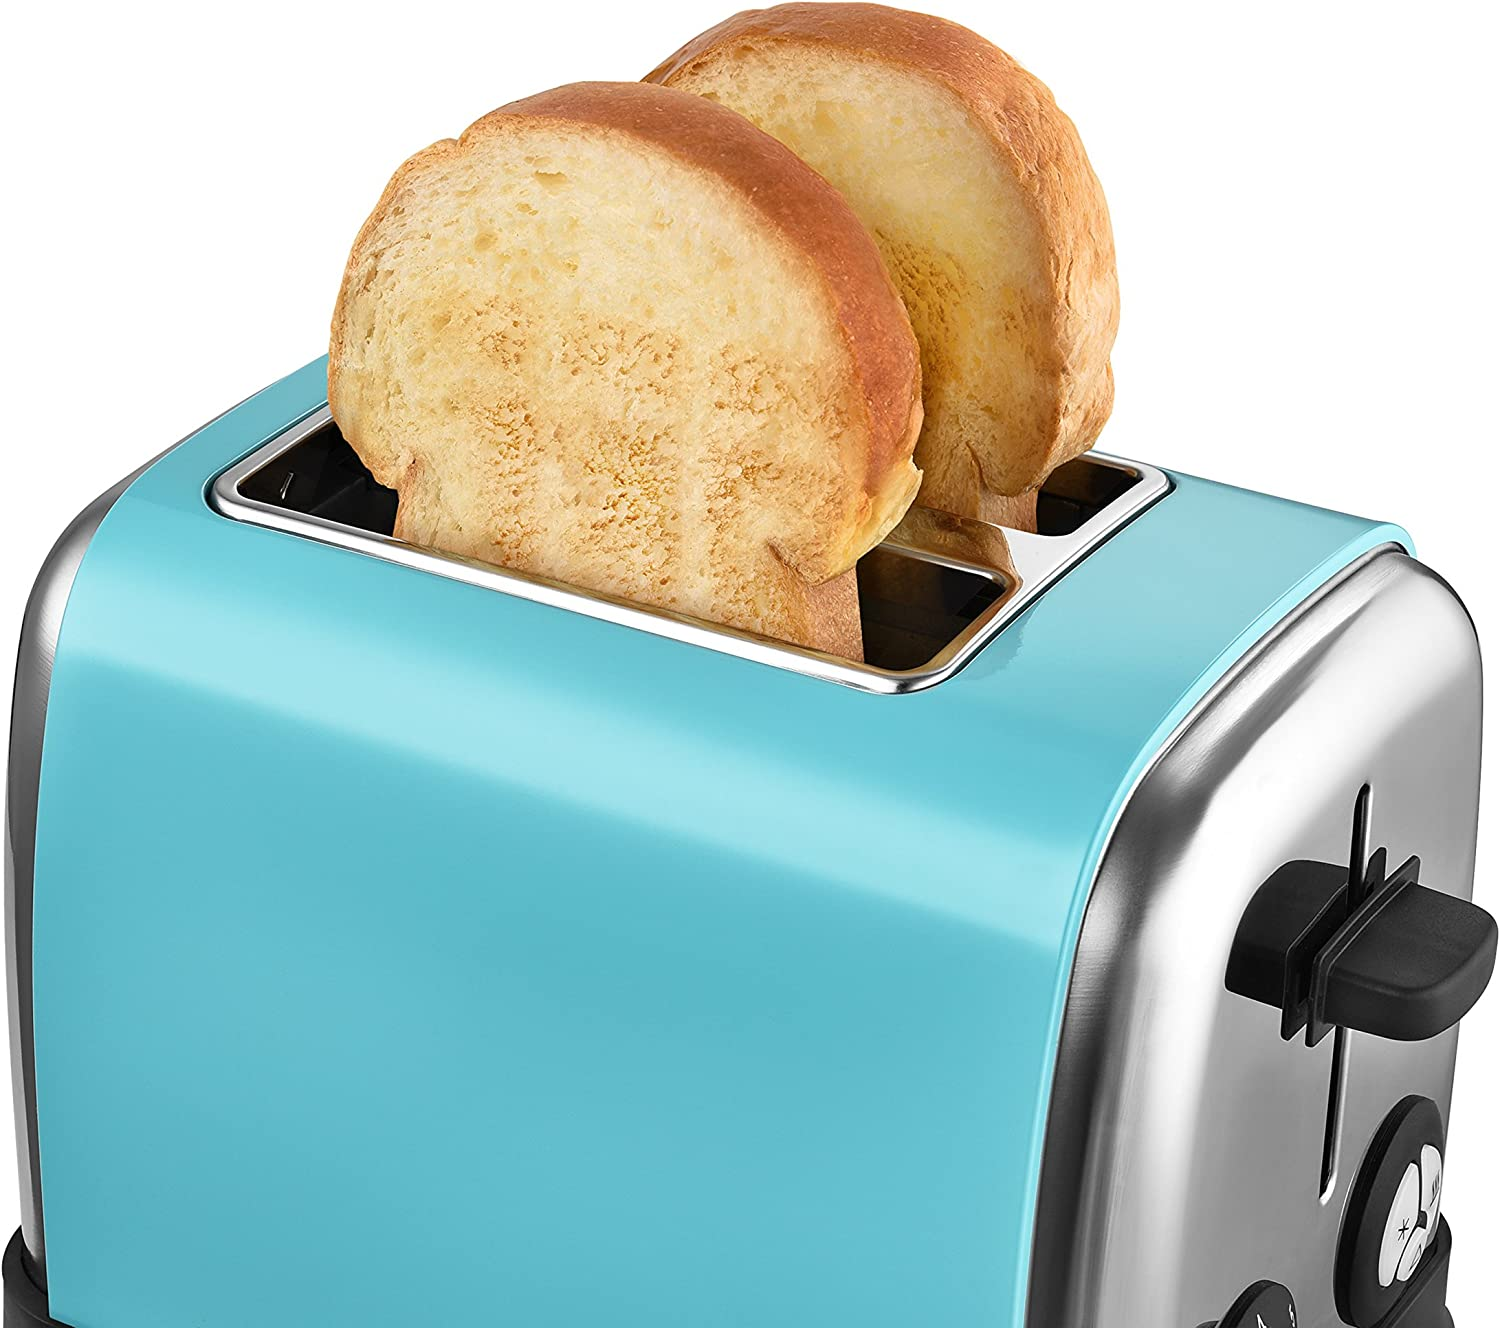 Kalorik Copper KitchenOriginals Stainless Steel 2 Slice Toaster with 6 Browning Settings, Extra High Lift, Defrost, Reheat, Cancel, 850W, TO45726, 850 W Aqua